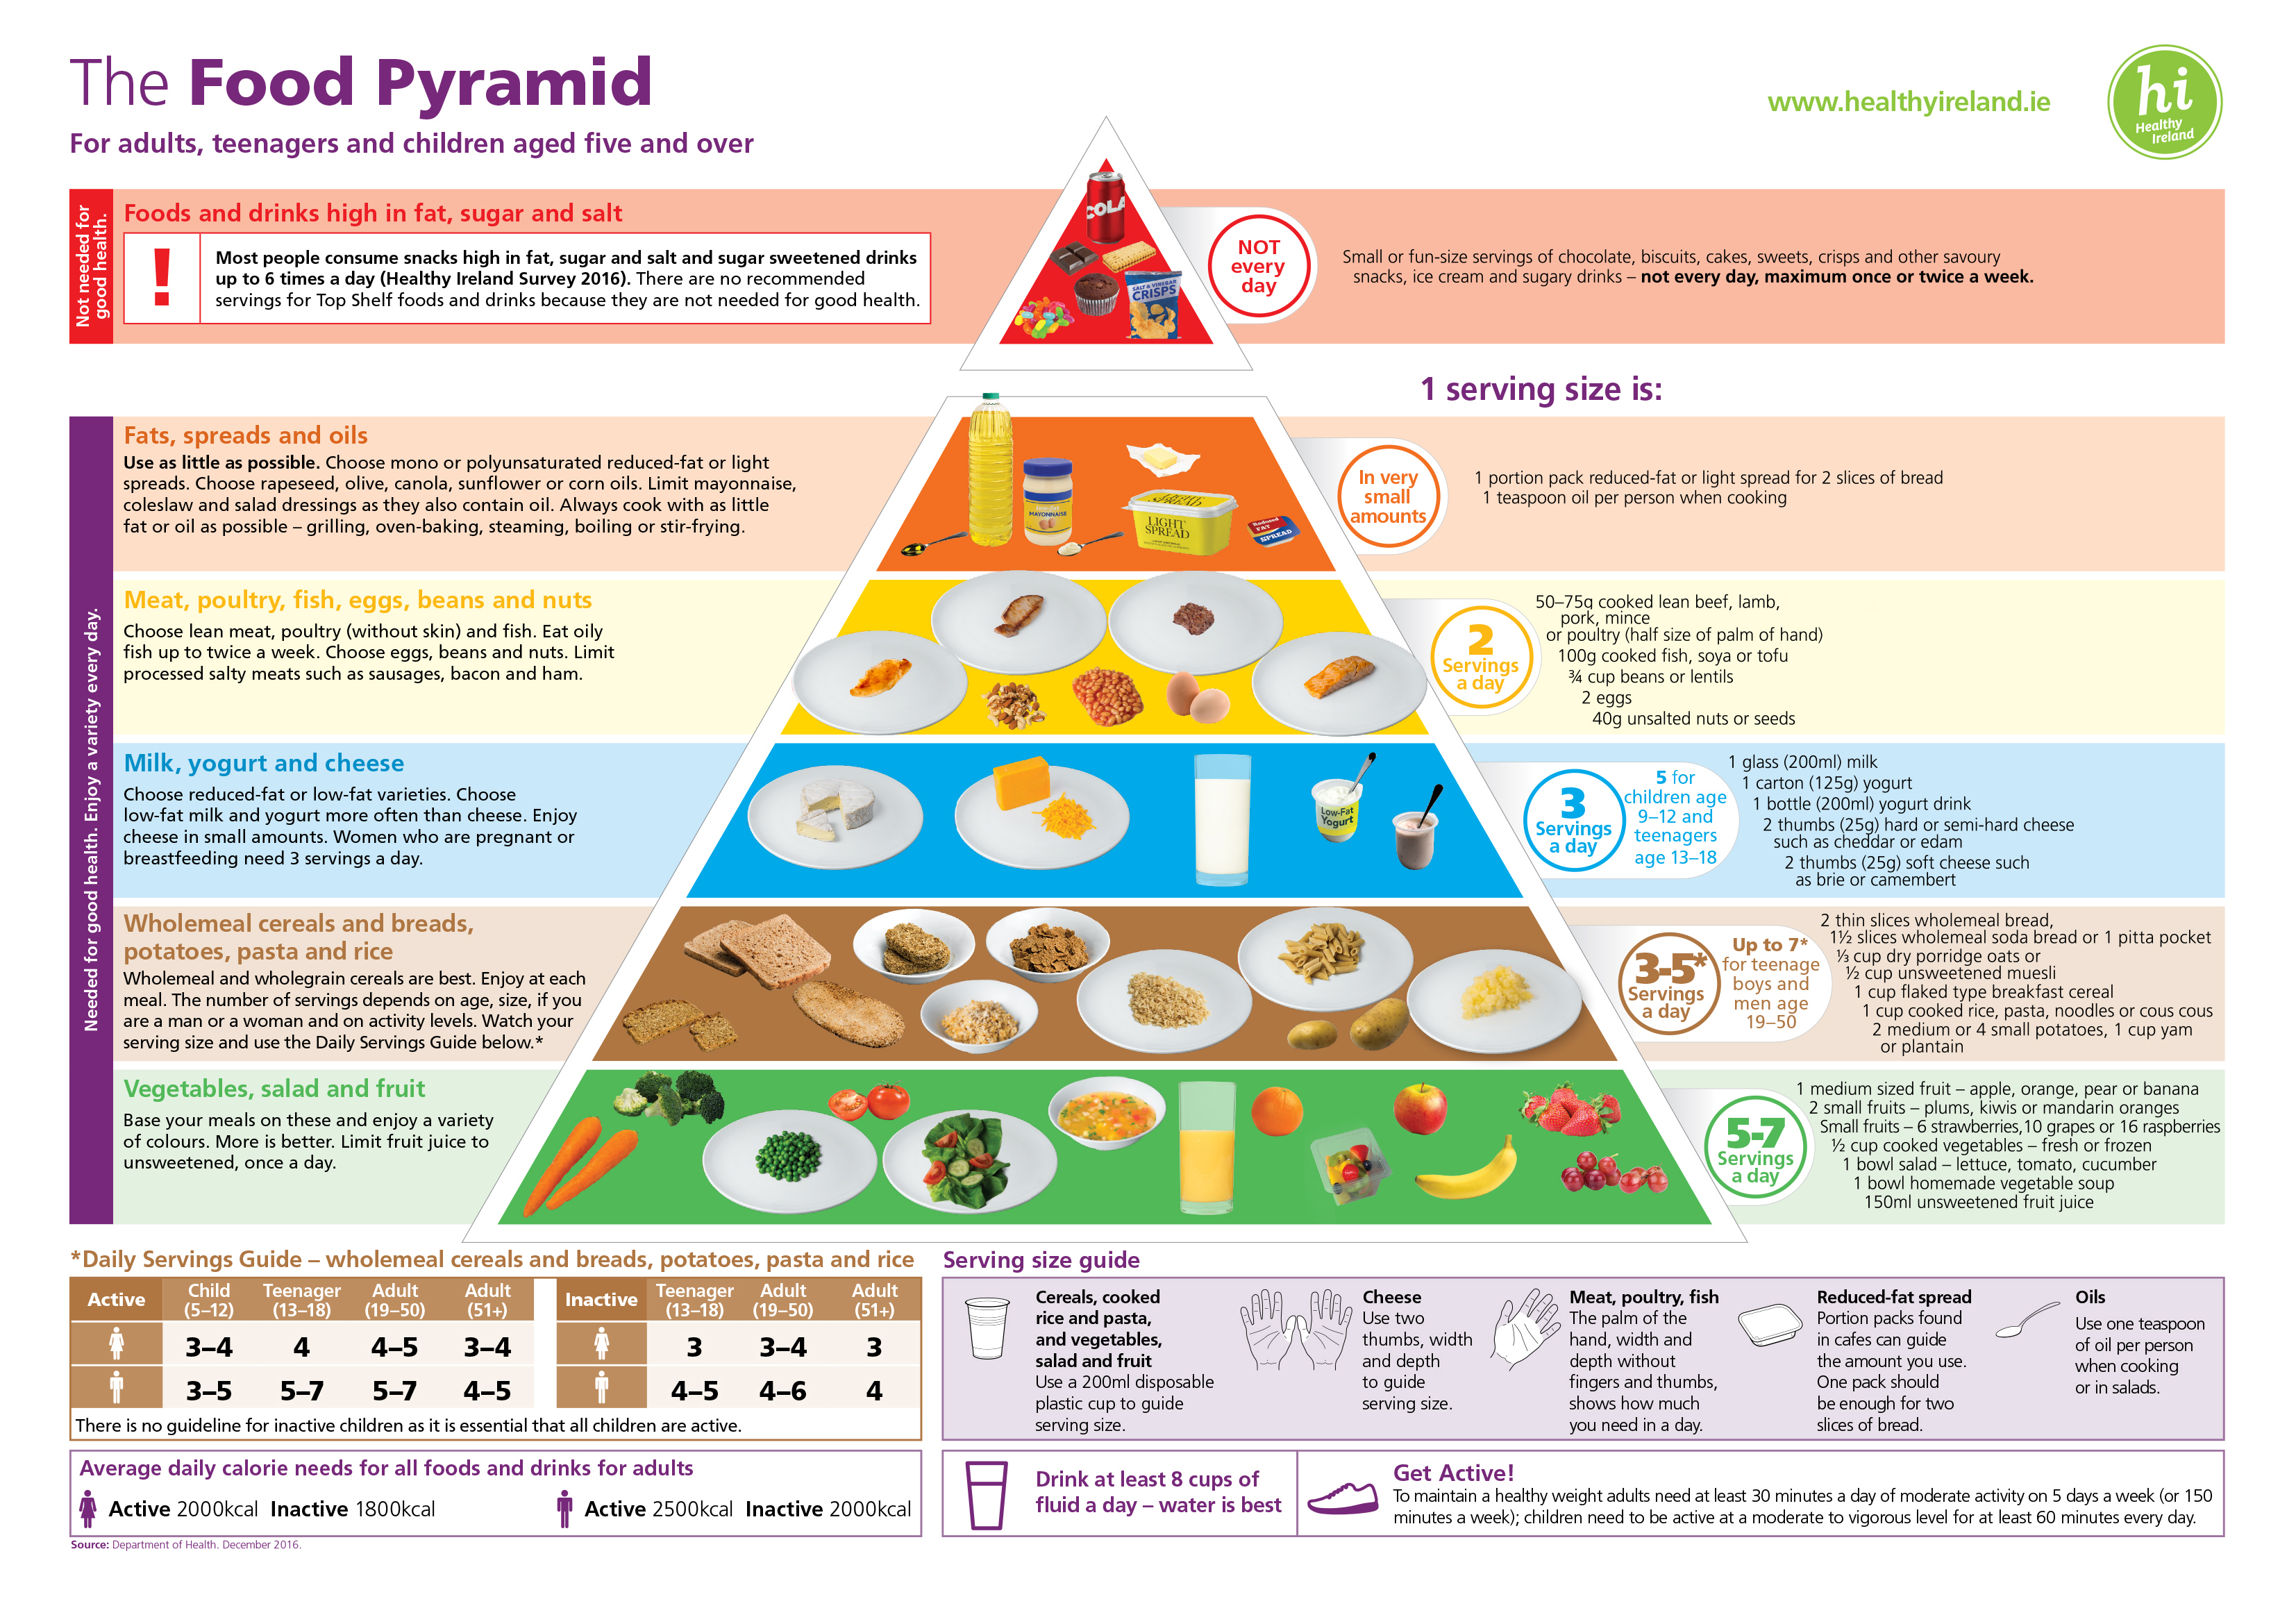 M9617-DEPARTMENT-OF-HEALTH_Food-Pyramid-Poster_Complex-Version